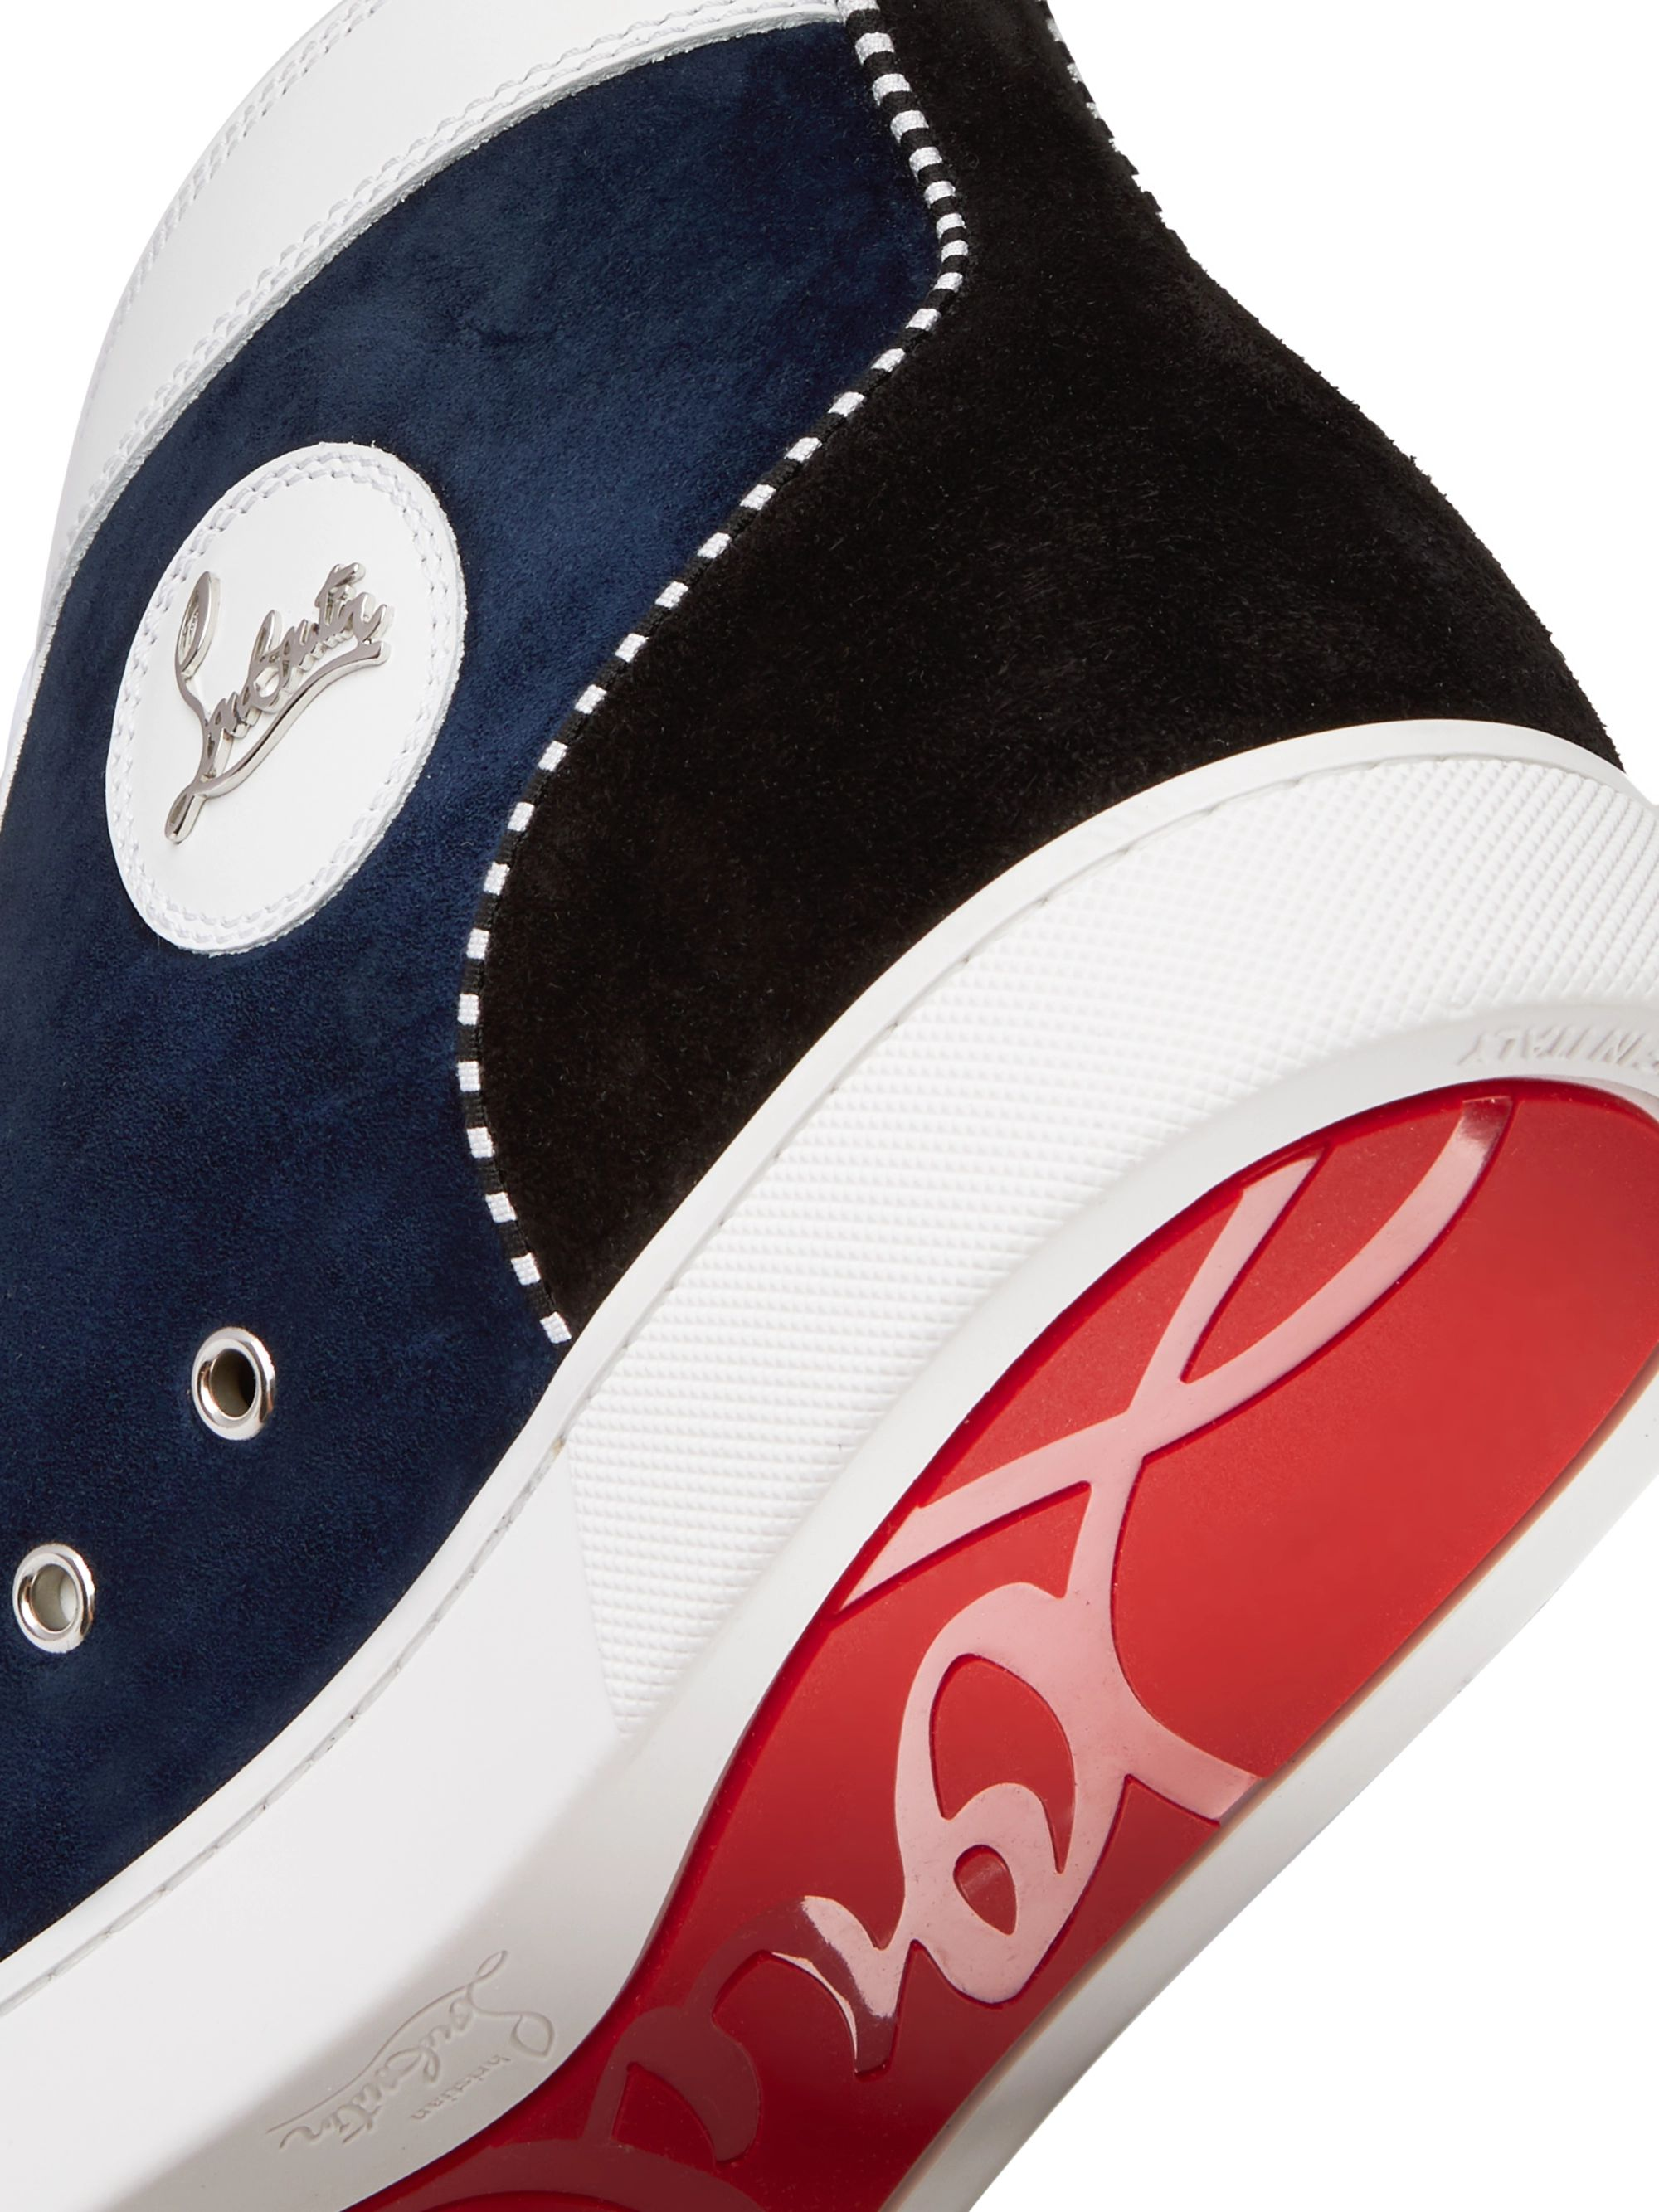 Christian Louboutin Louis Appliquéd Suede and Leather High-Top Sneakers